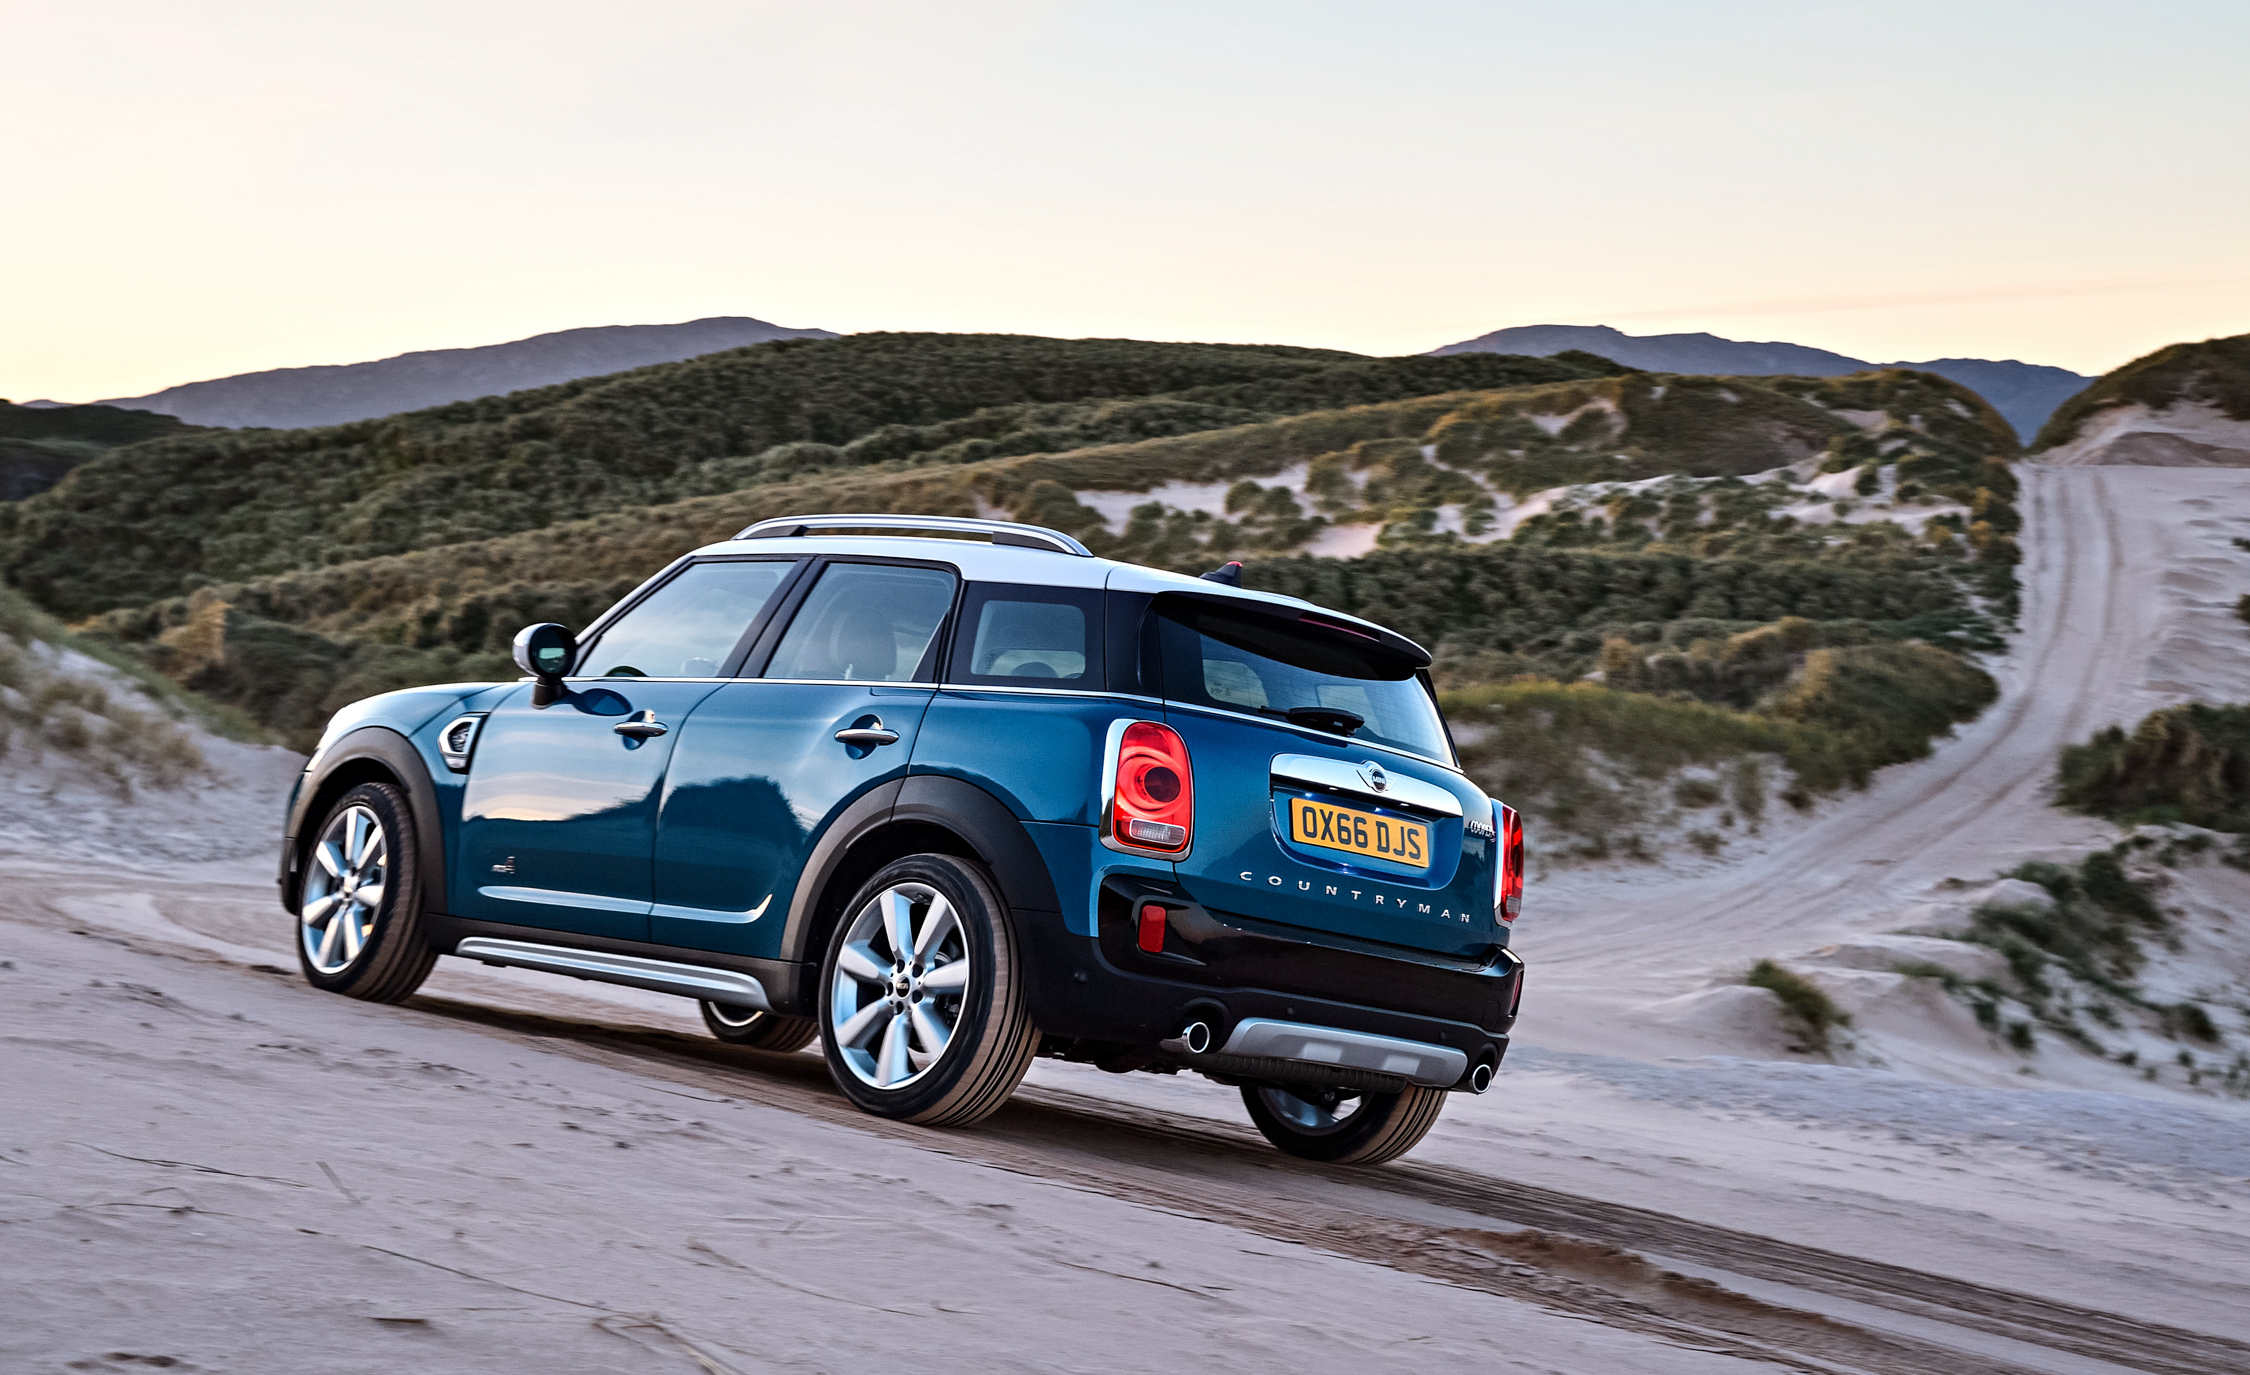 2017 Mini Cooper S Countryman Test Drive Side And Rear View (Photo 21 of 61)